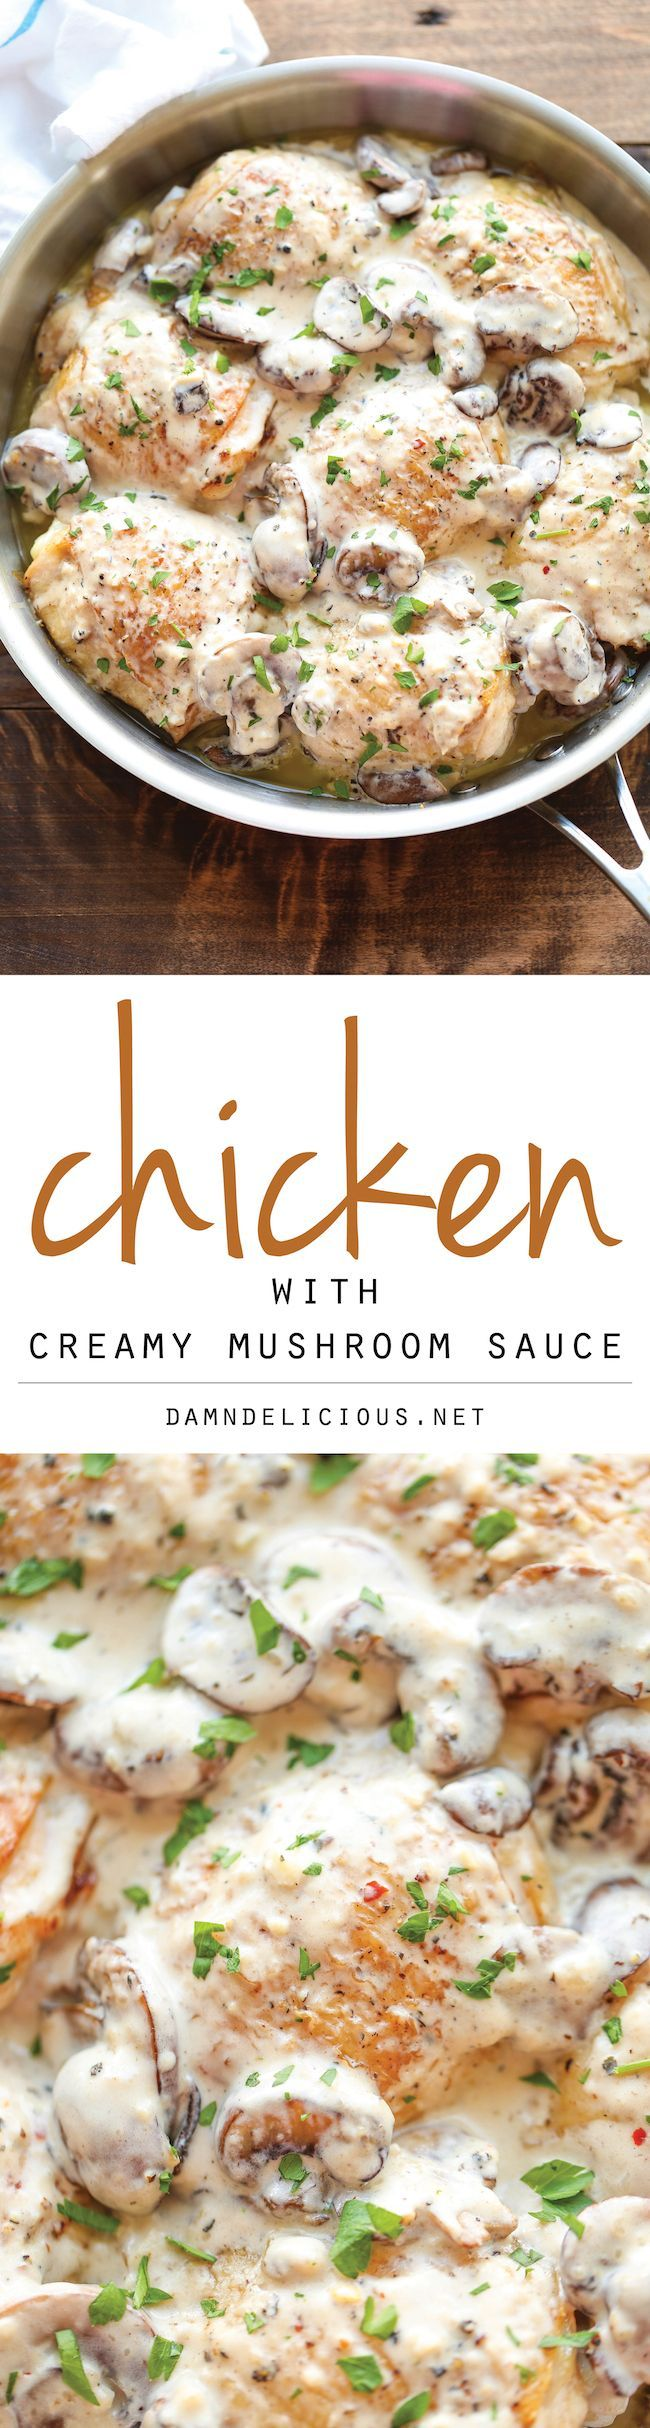 Chicken with Creamy Mushroom Sauce - Crisp-tender chicken baked to perfection, smothered in the most creamy mushroom sauce easily made from scratch! cheap recipes quick recipes #recipe #frugal